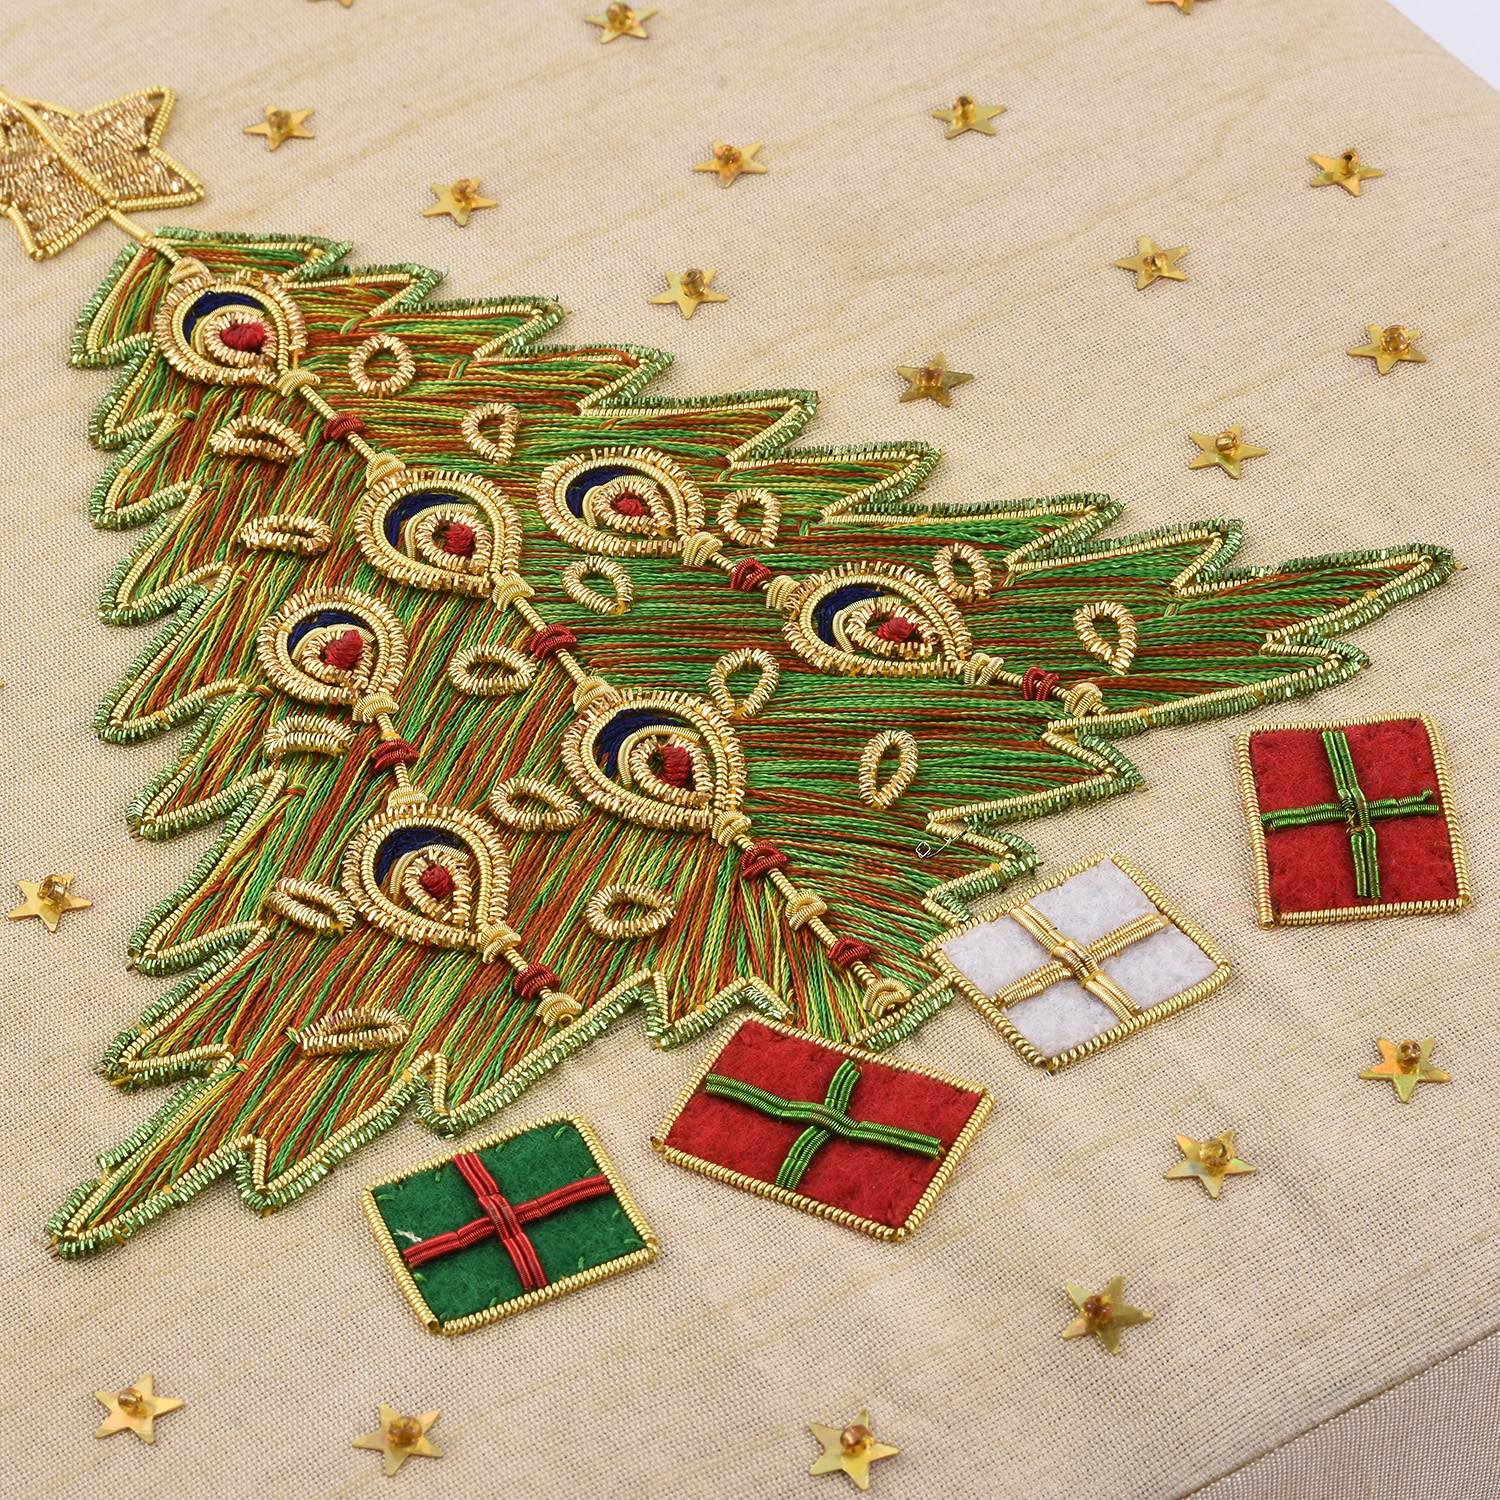 hand embroidery ring box with christmas tree embroidery 10x10 in - Christmas Ornament Ring Box